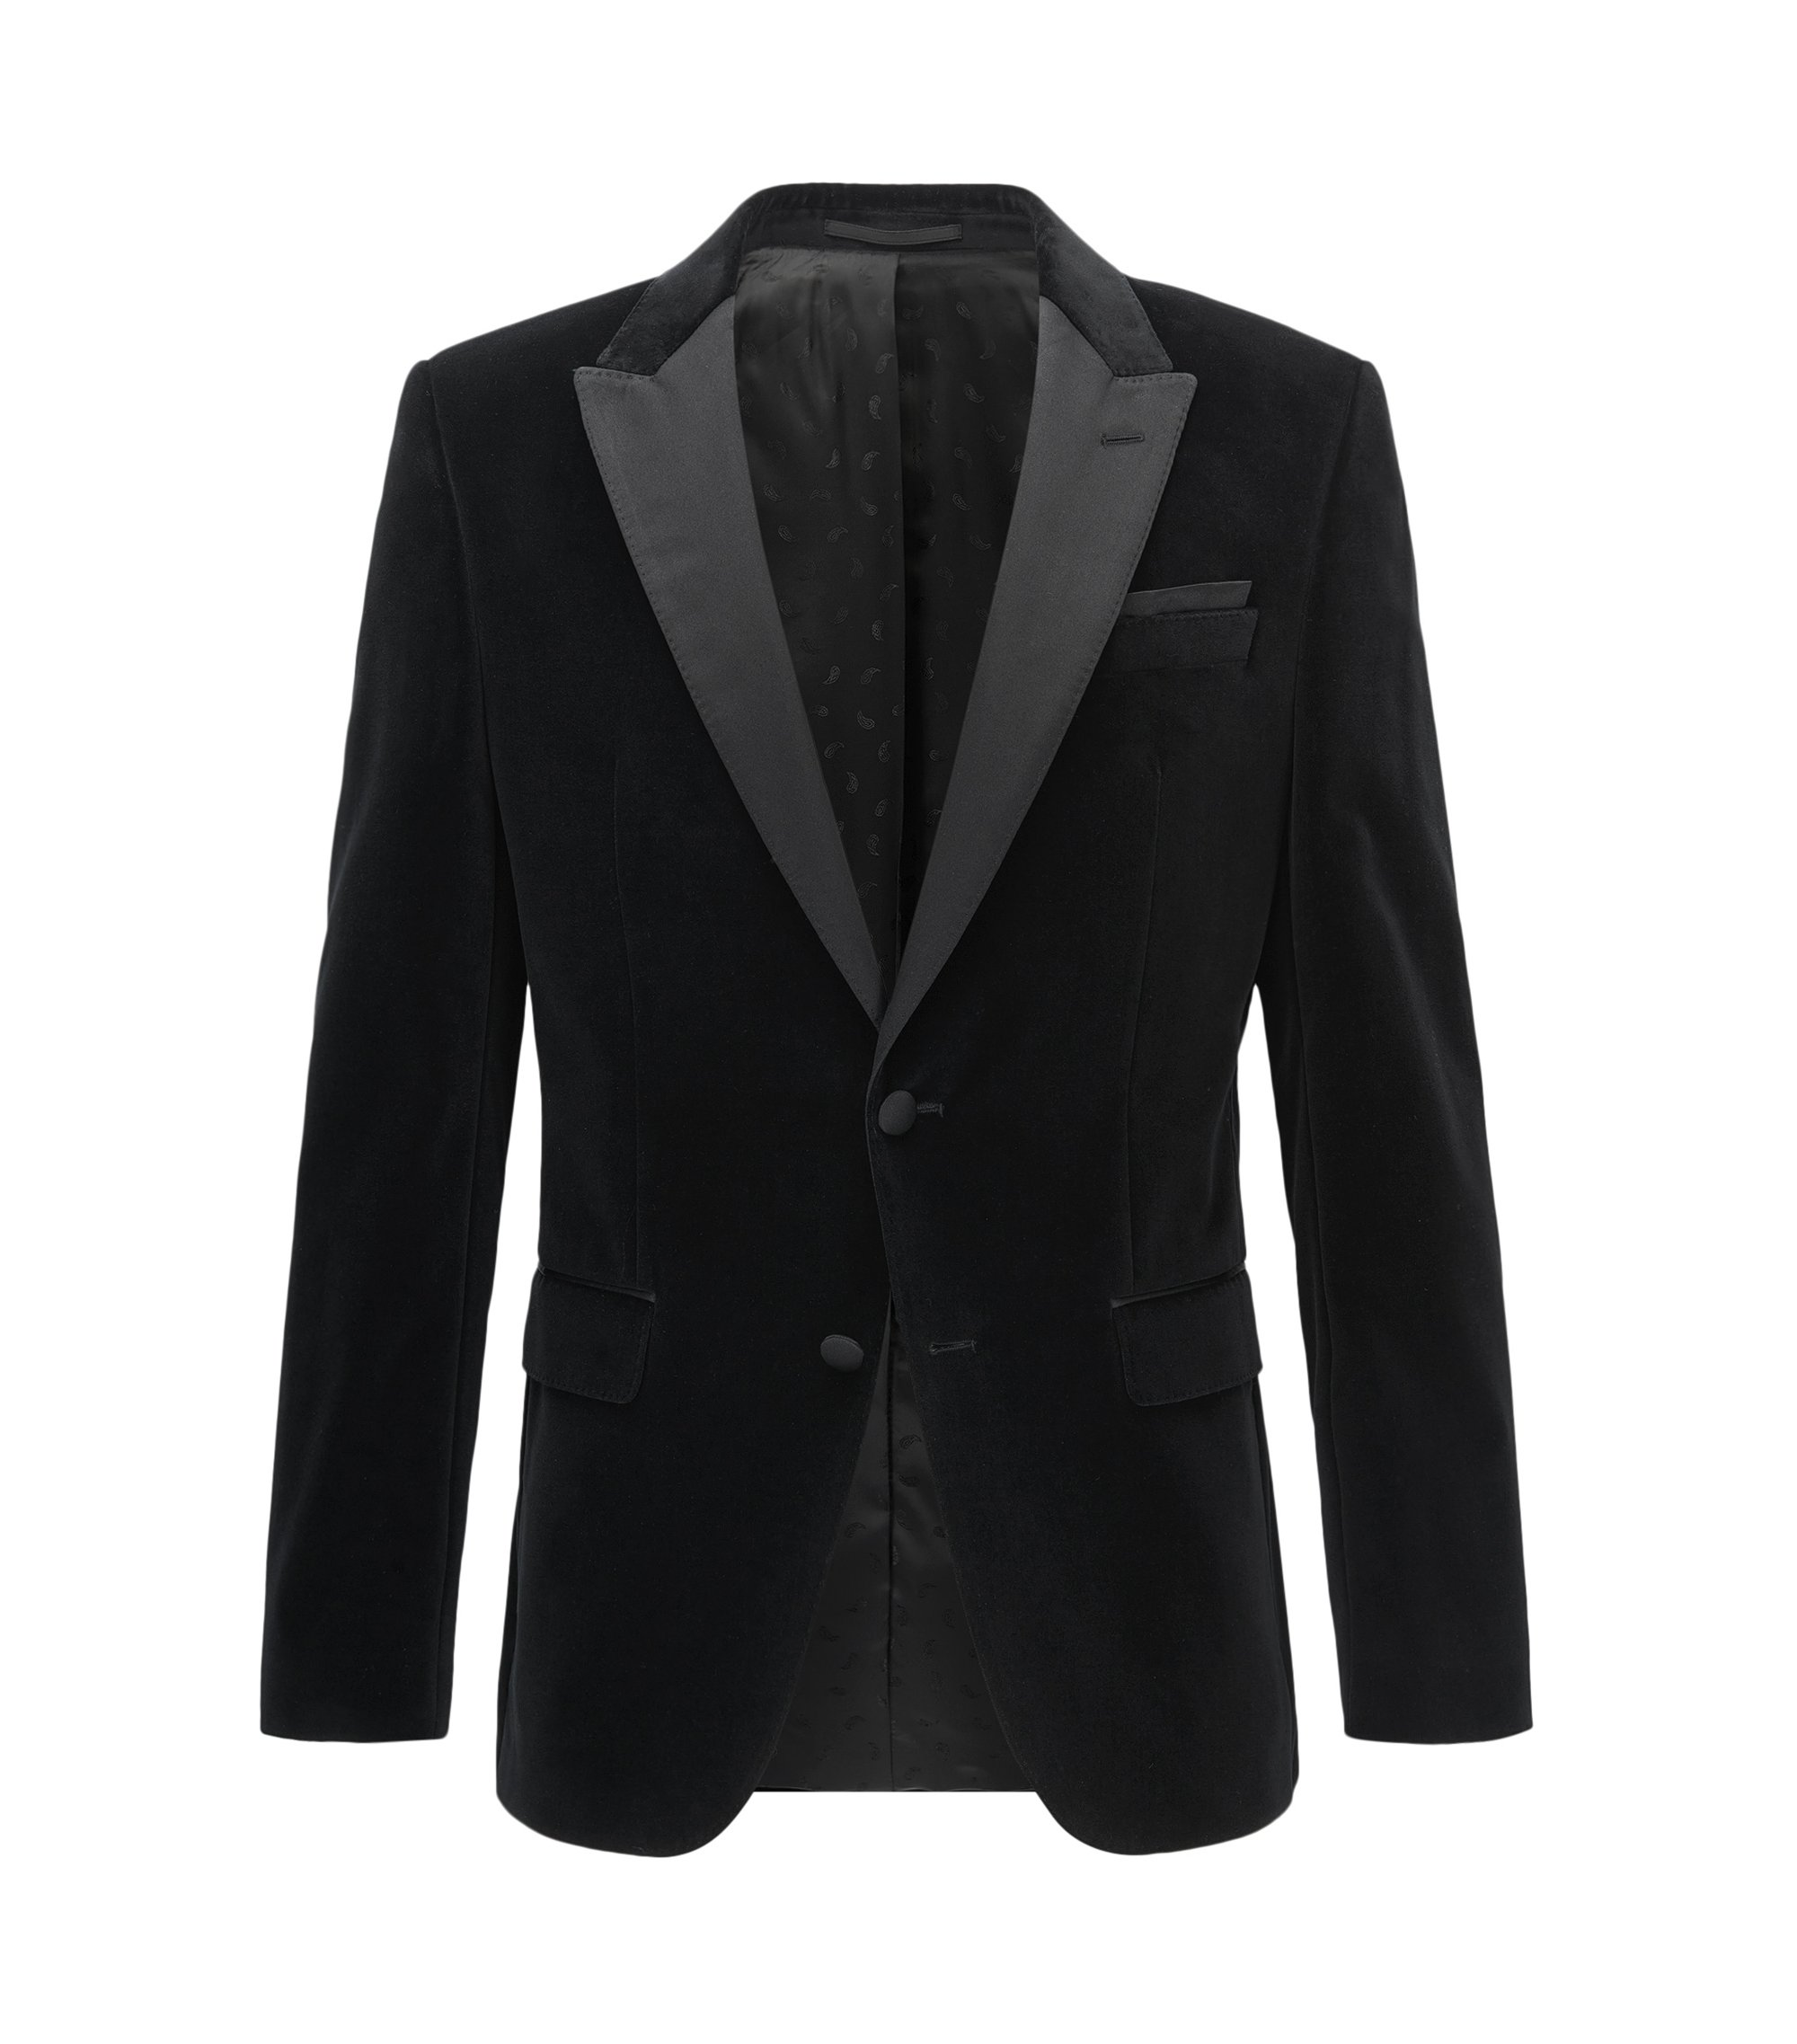 Giacca da smoking slim fit in velluto con bande in seta, Nero